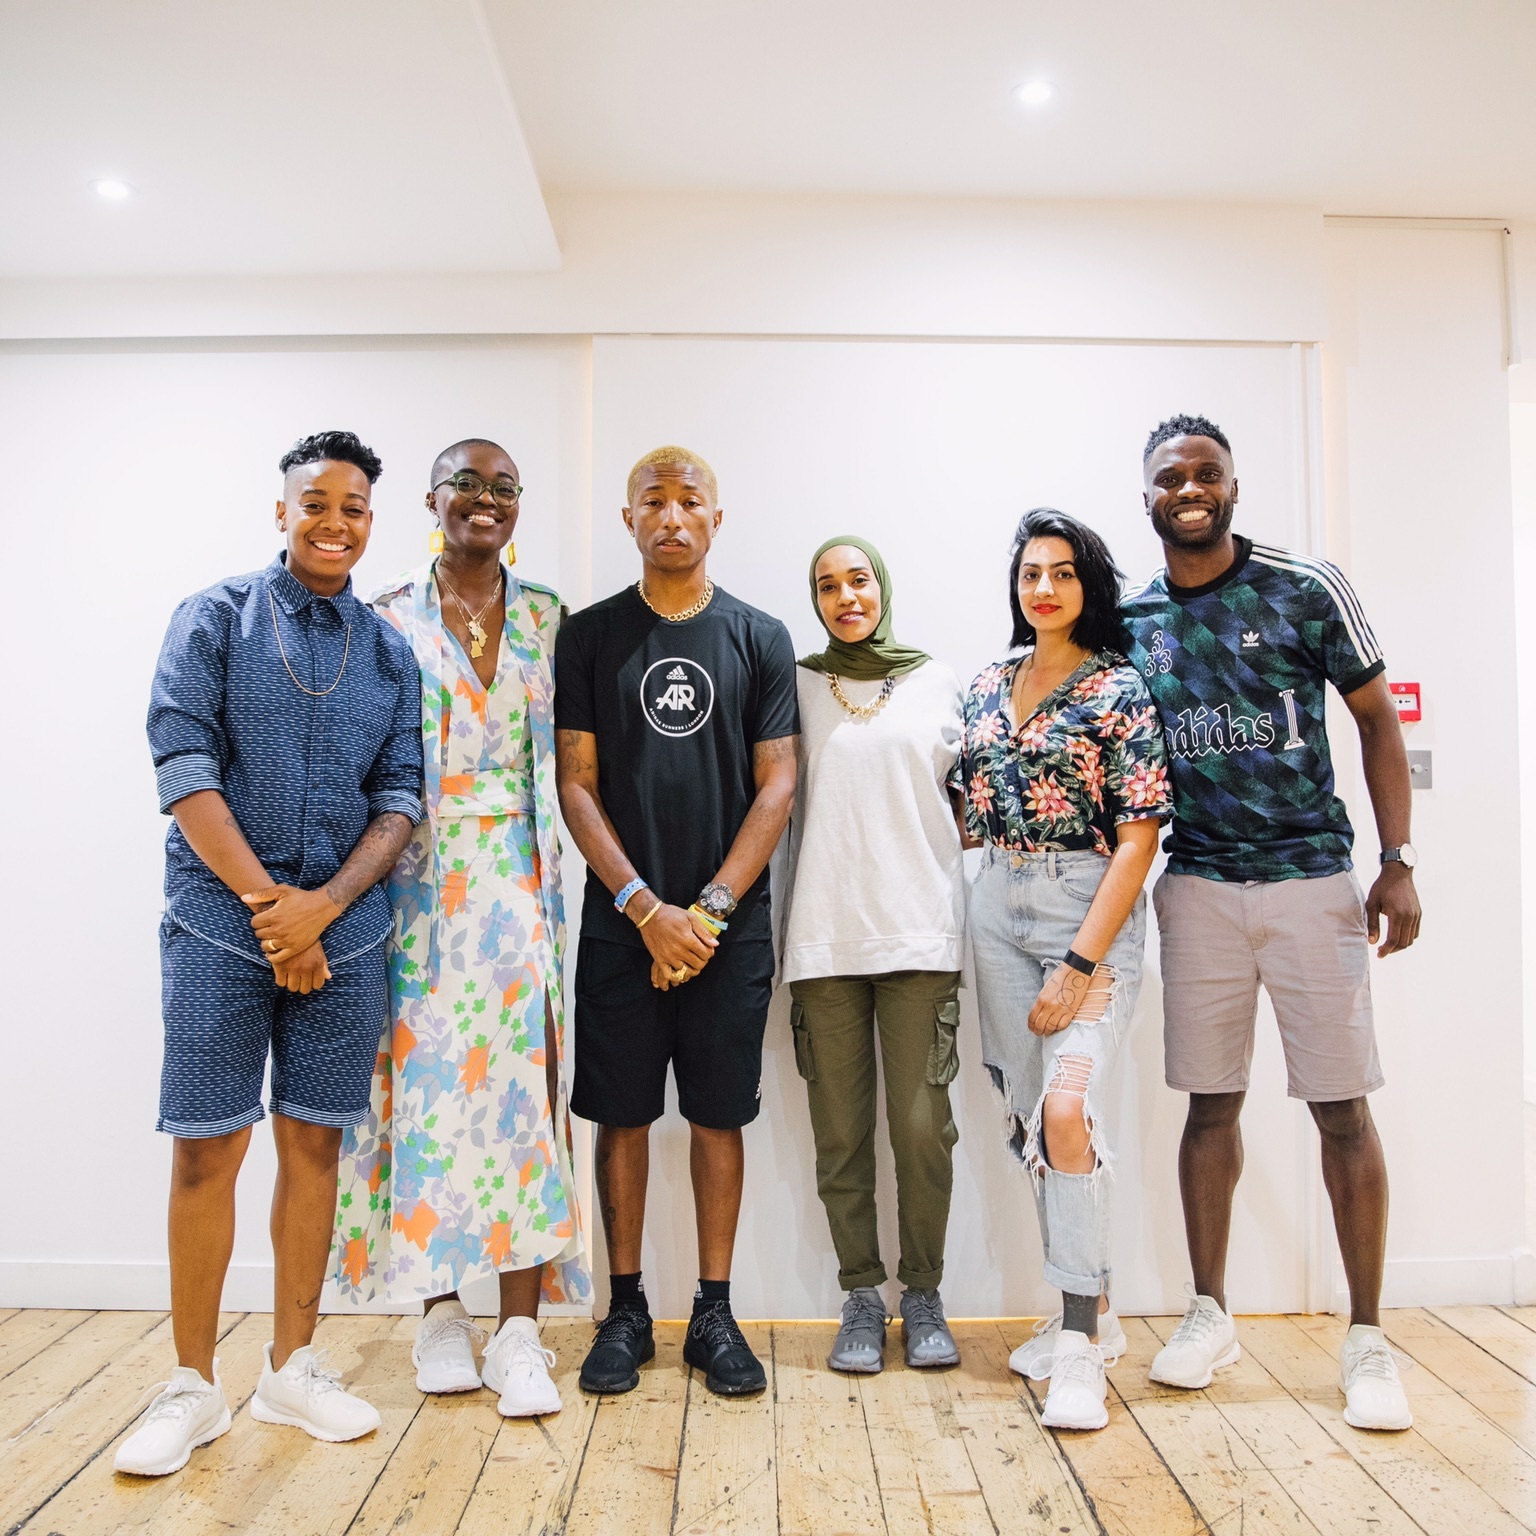 Adidas x Pharrell Solar Hu Panel Talk - I was joined by Asma Elbadawi, Nicole Crentsil, Ayo Dada and Ashley 'Dotty' Charles AKA Amplify Dot to talk about overcoming obstacles in the launch of Pharrell William's new Solar Hu footwear drop.